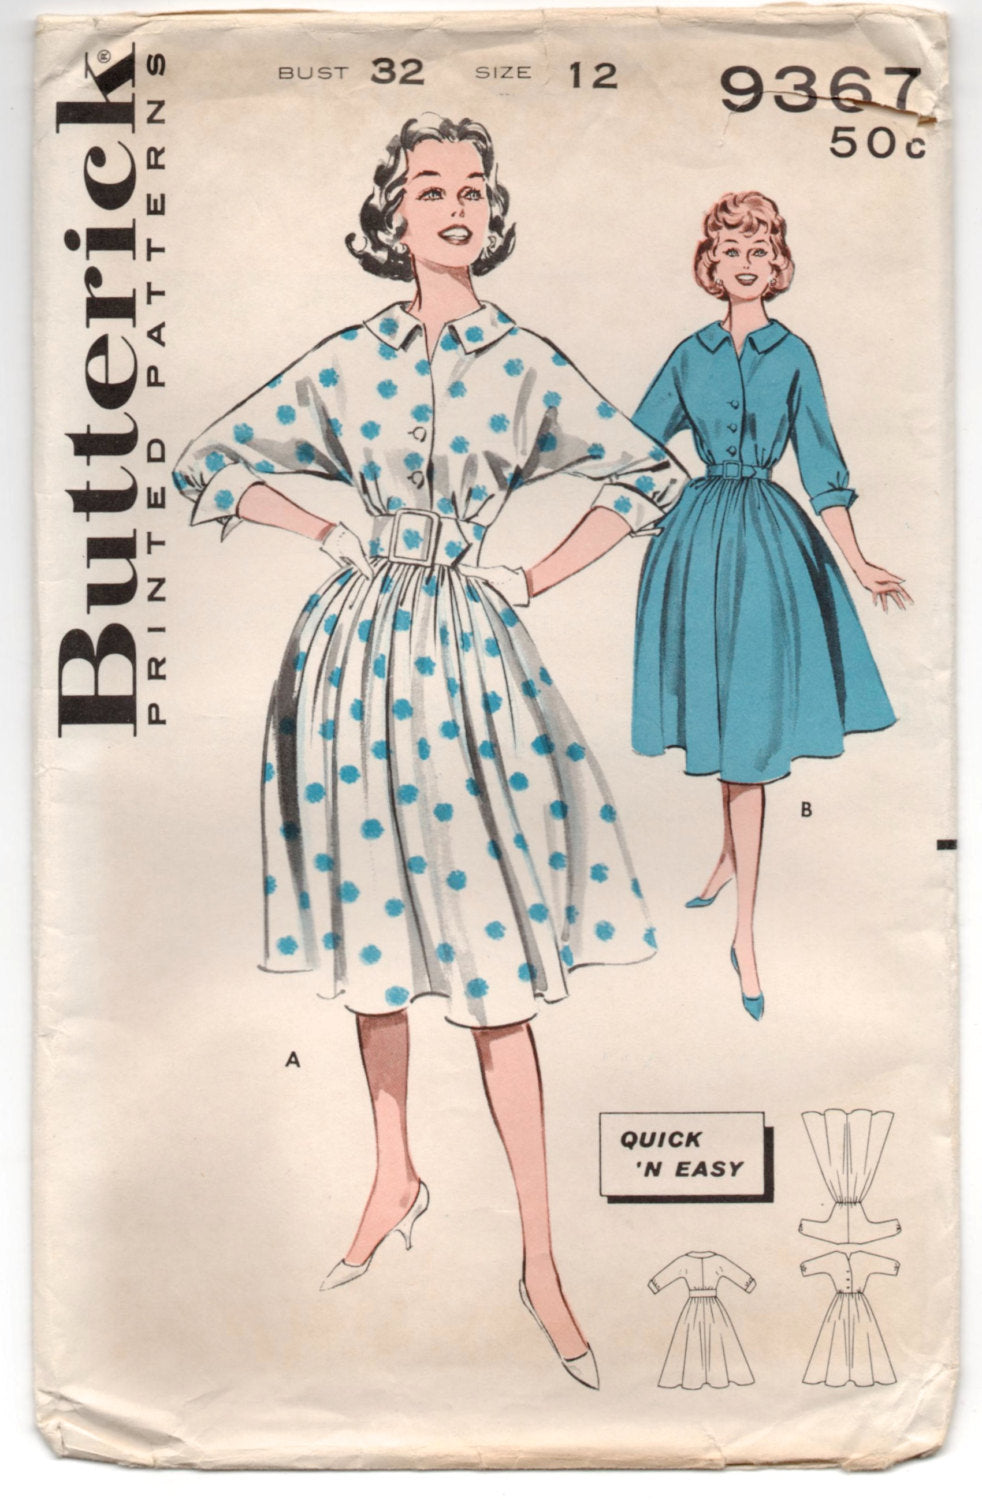 1960's Butterick One-Piece Button Up Rockabilly Dress Pattern - Bust 32